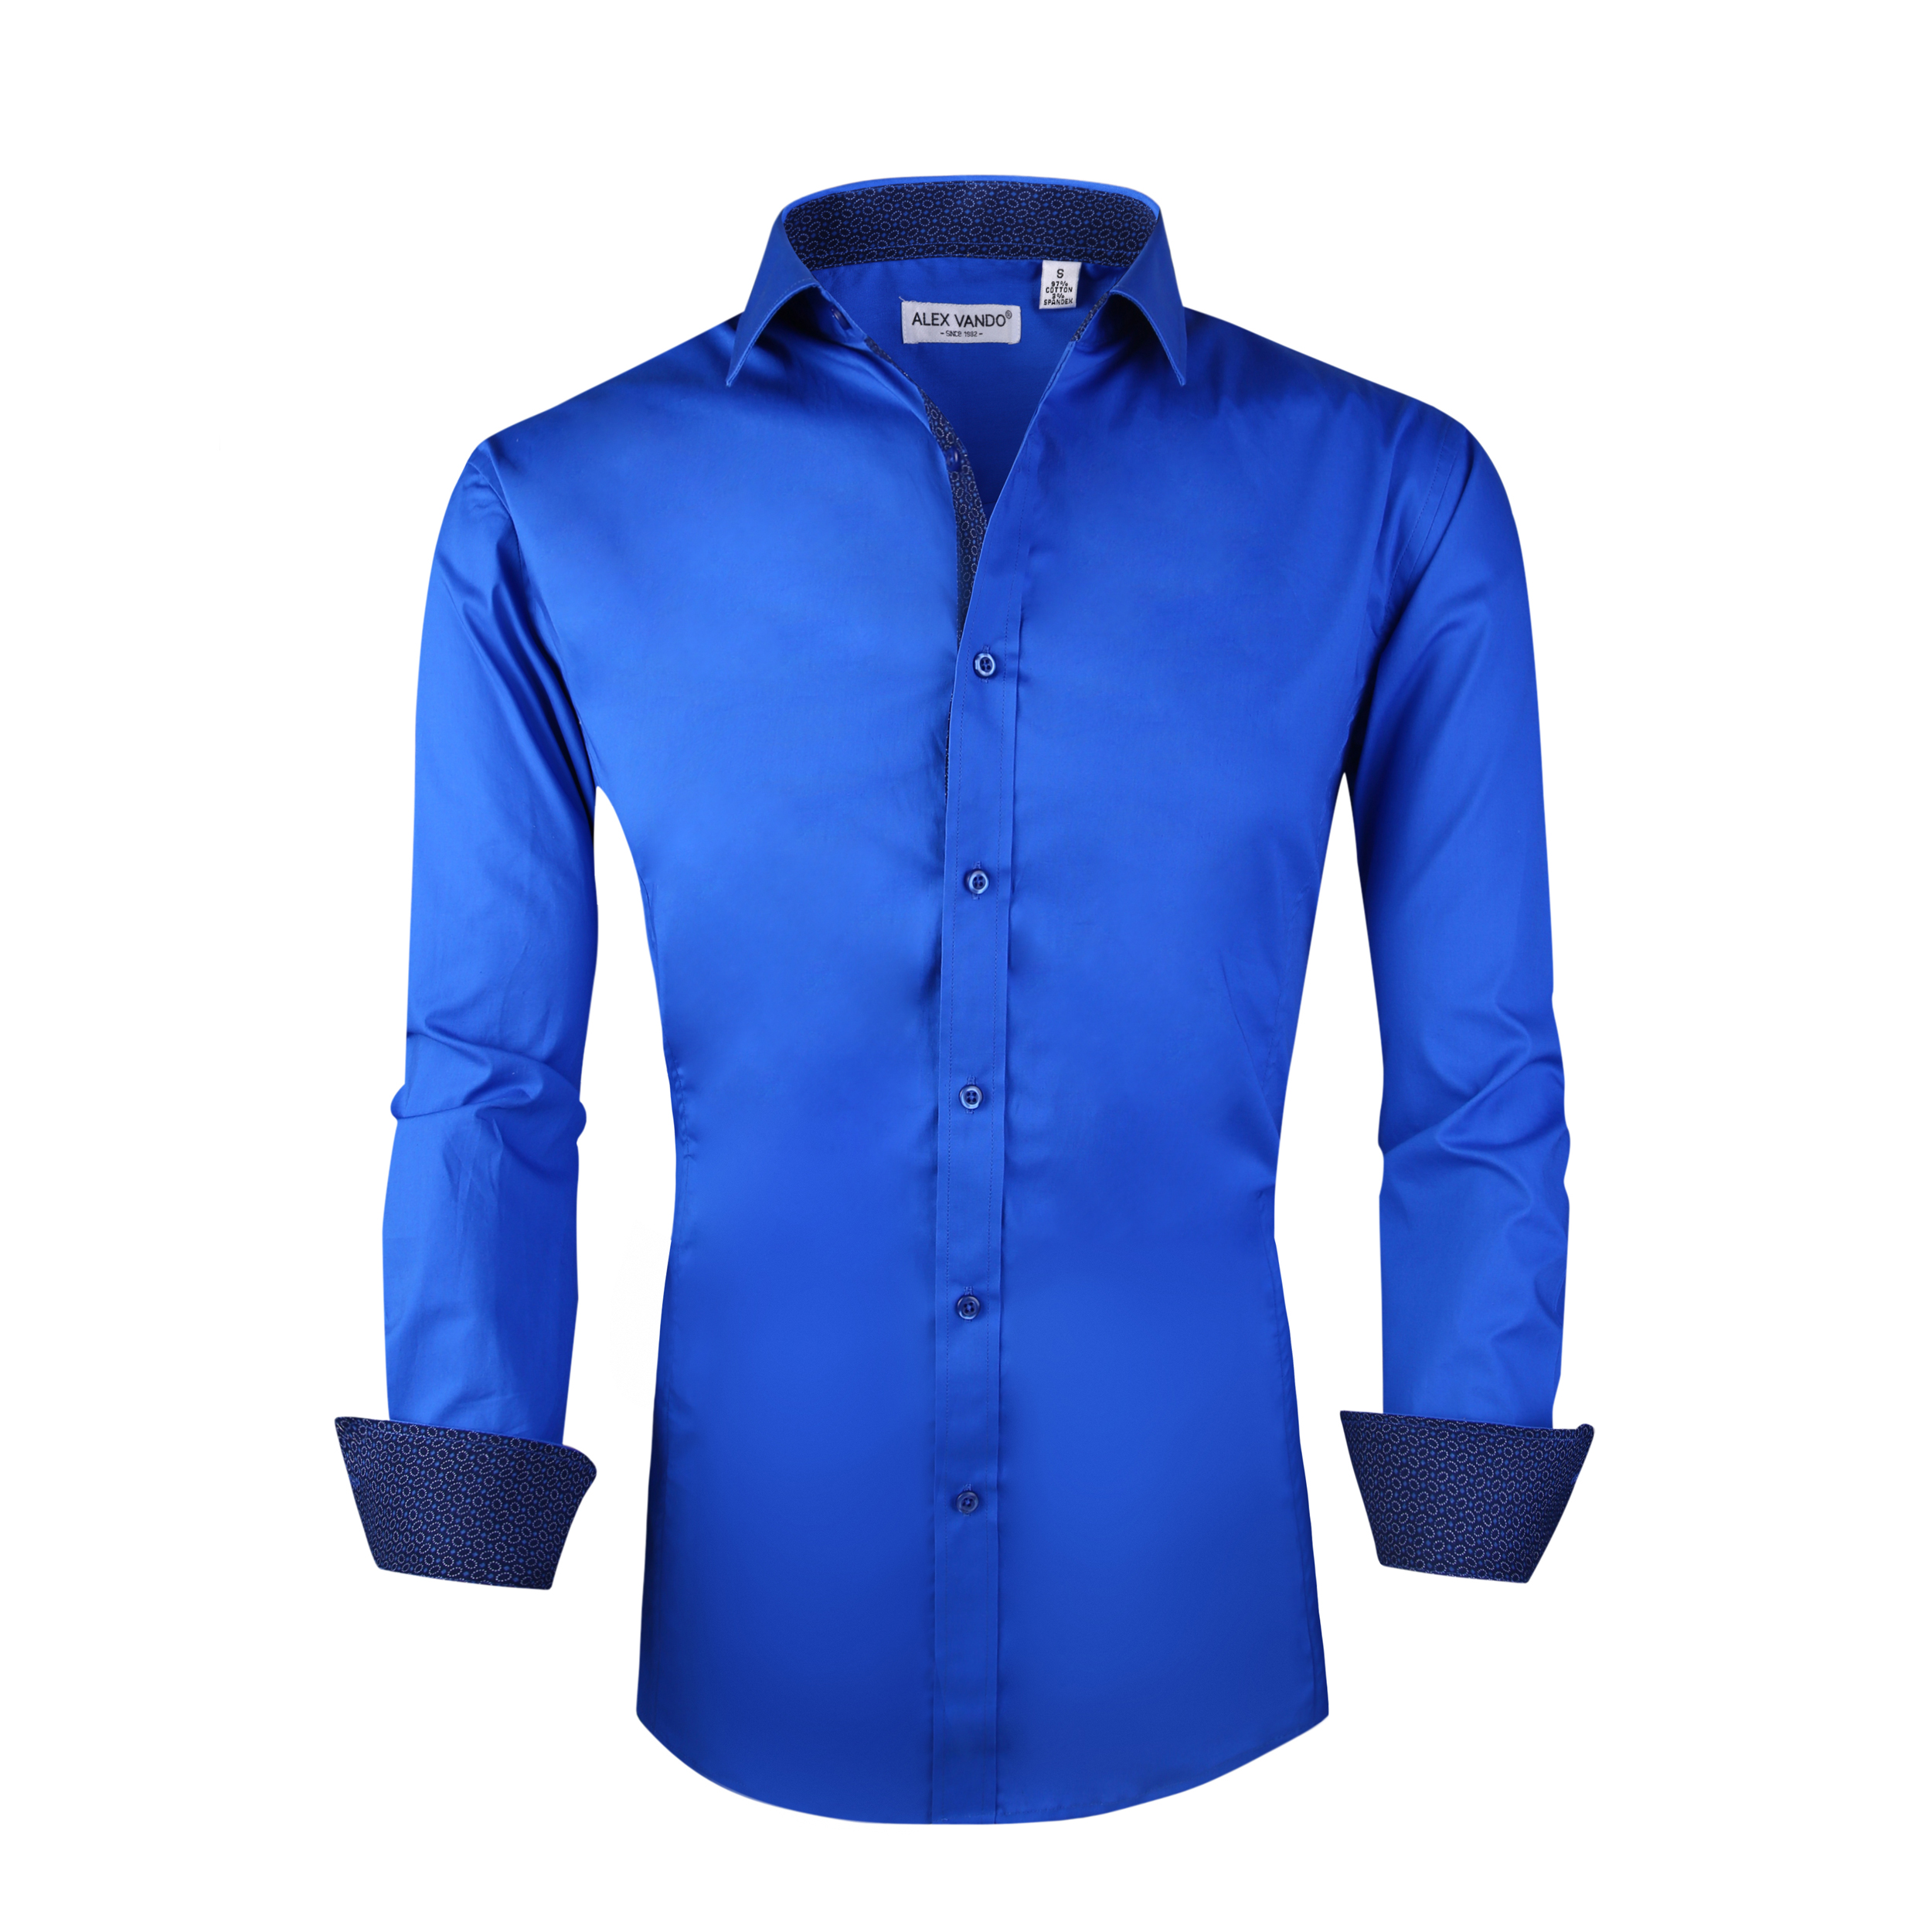 vast selection fair price another chance Mens Dress Shirts Cotton Spandex Casual Regular Fit Long Sleeve Shirt Royal  Blue